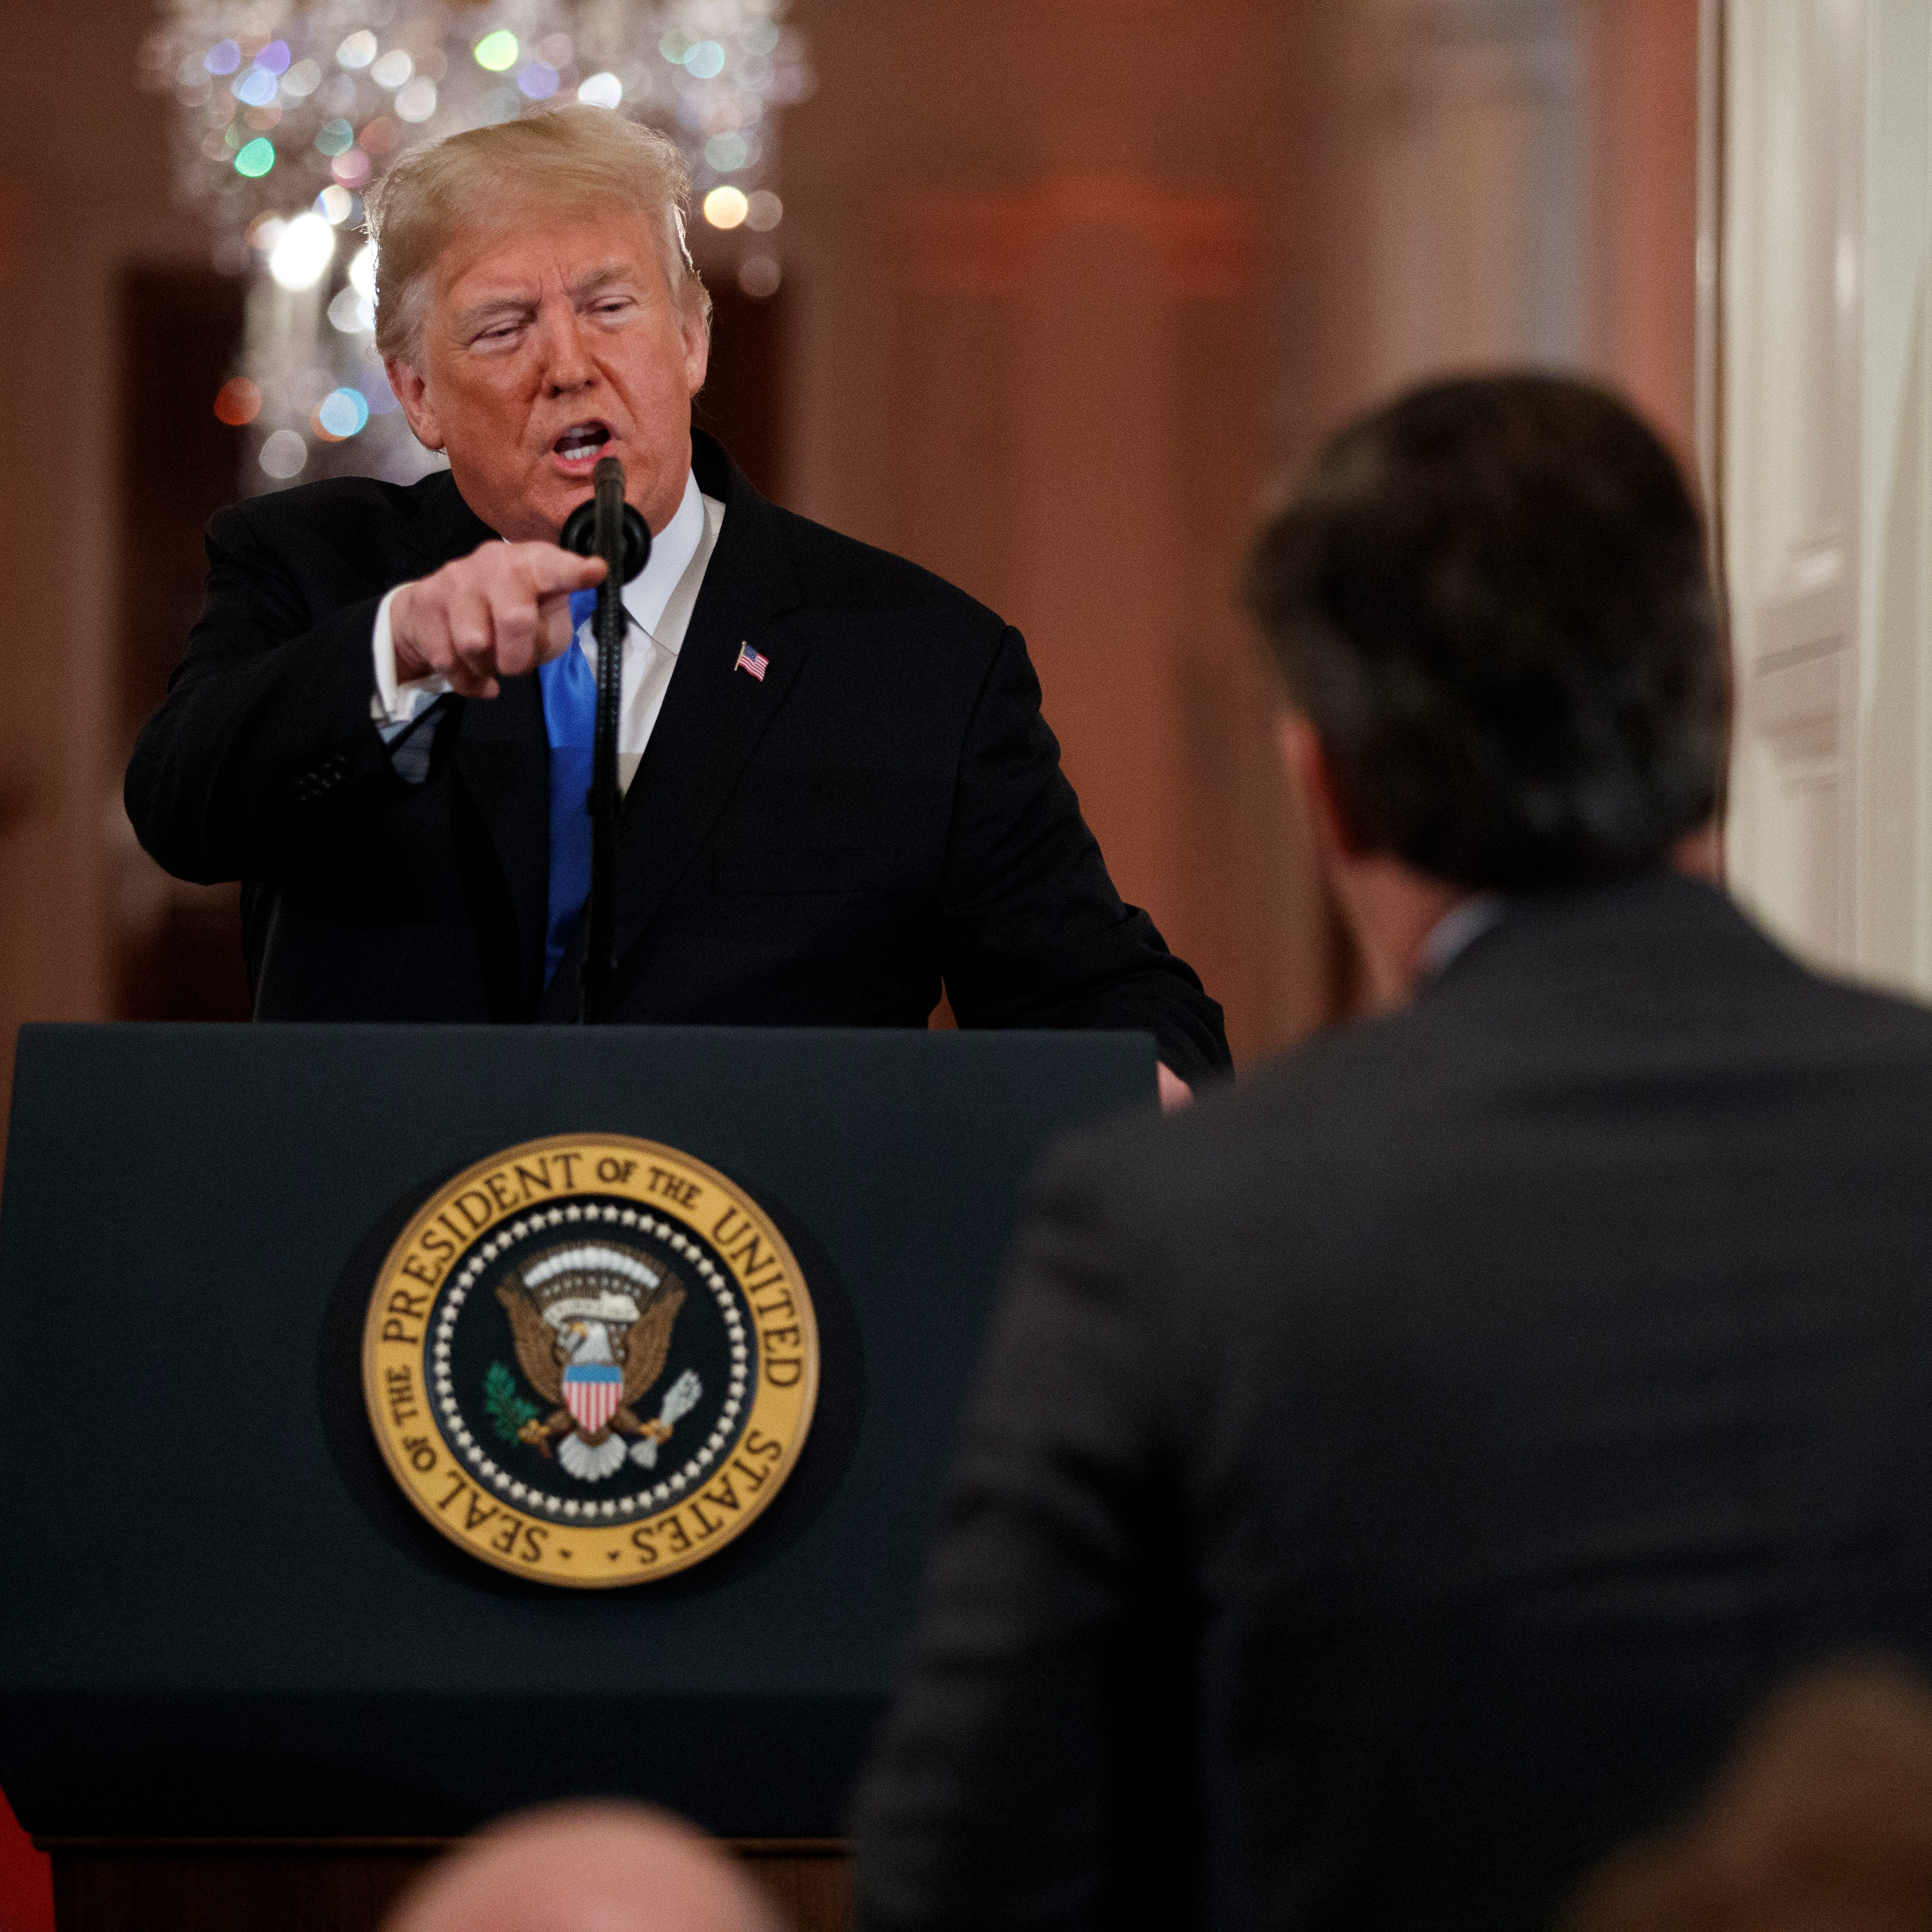 President Donald Trump speaks to CNN journalist Jim Acosta during a news conference in the East Room of the White House, Nov. 7, 2018, in Washington.